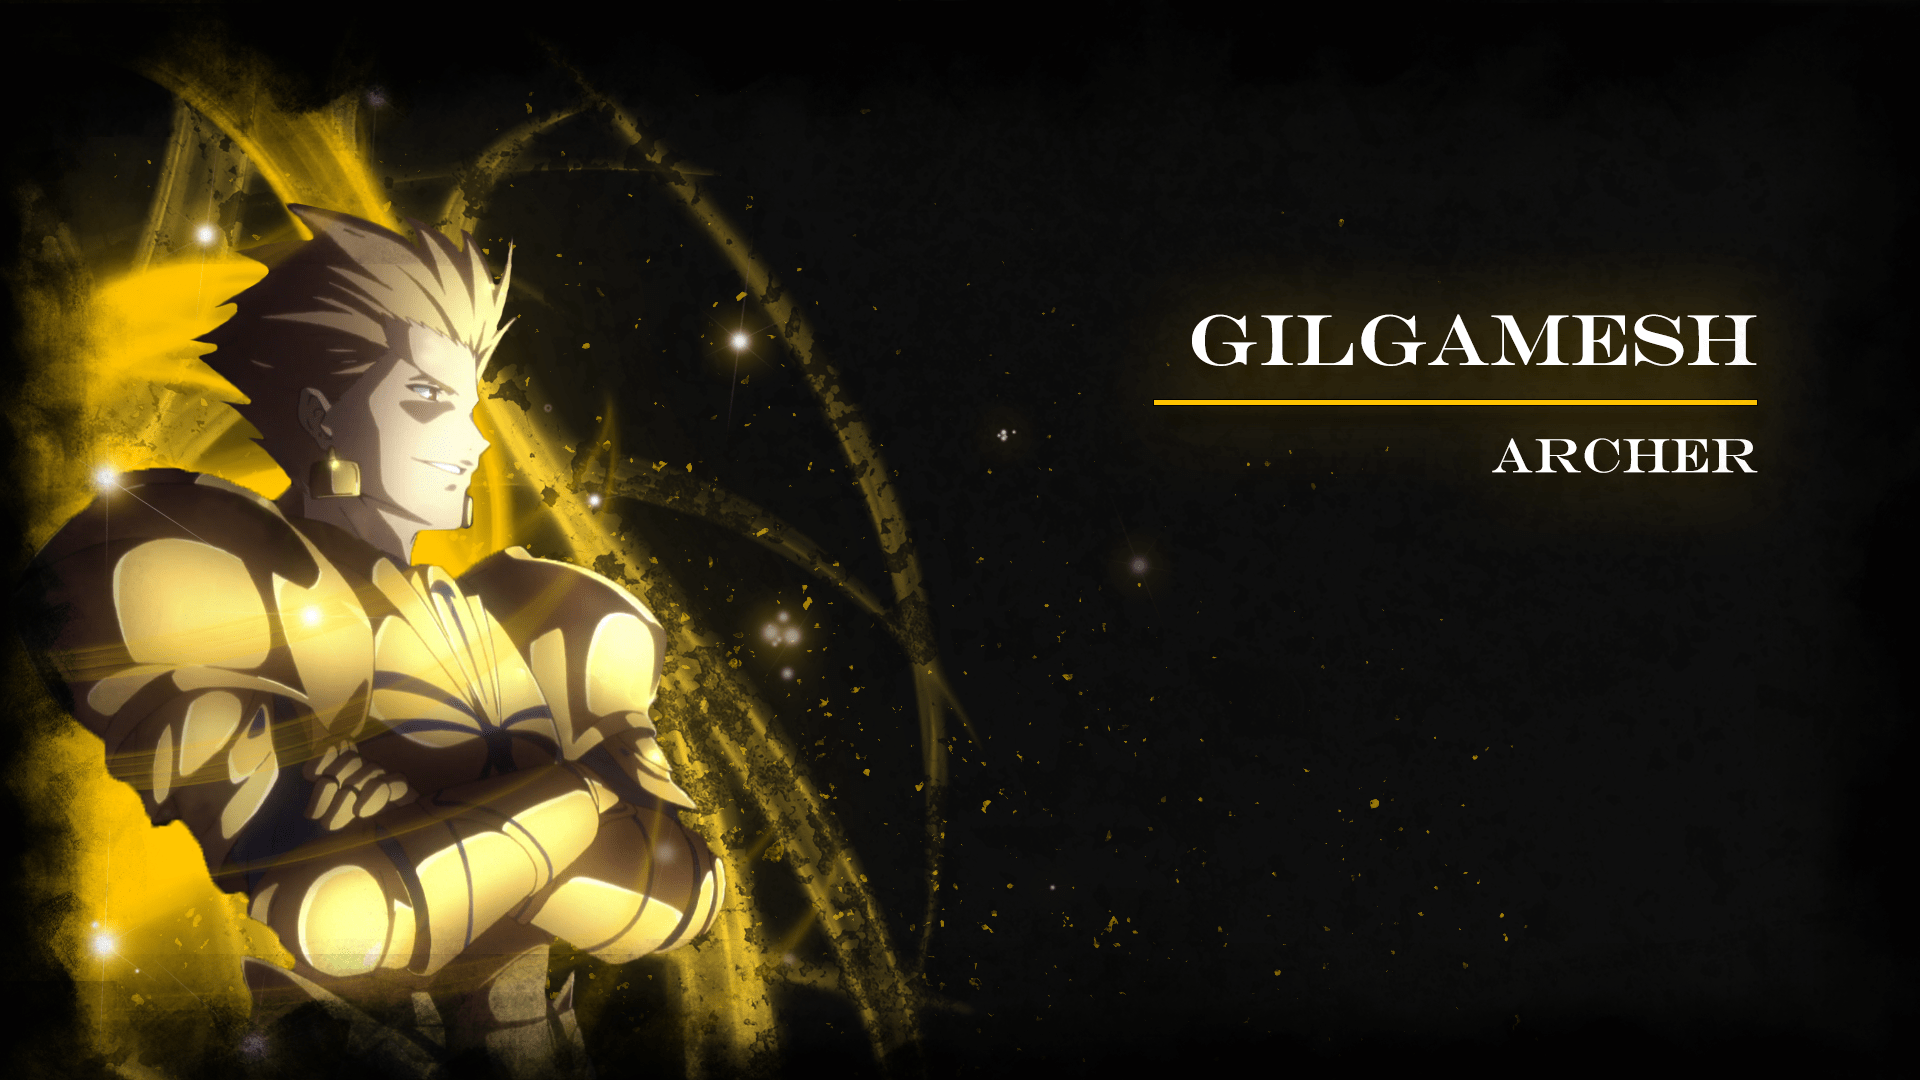 Genji Wallpaper Iphone Fate Zero Full Hd Wallpaper And Background 1920x1080